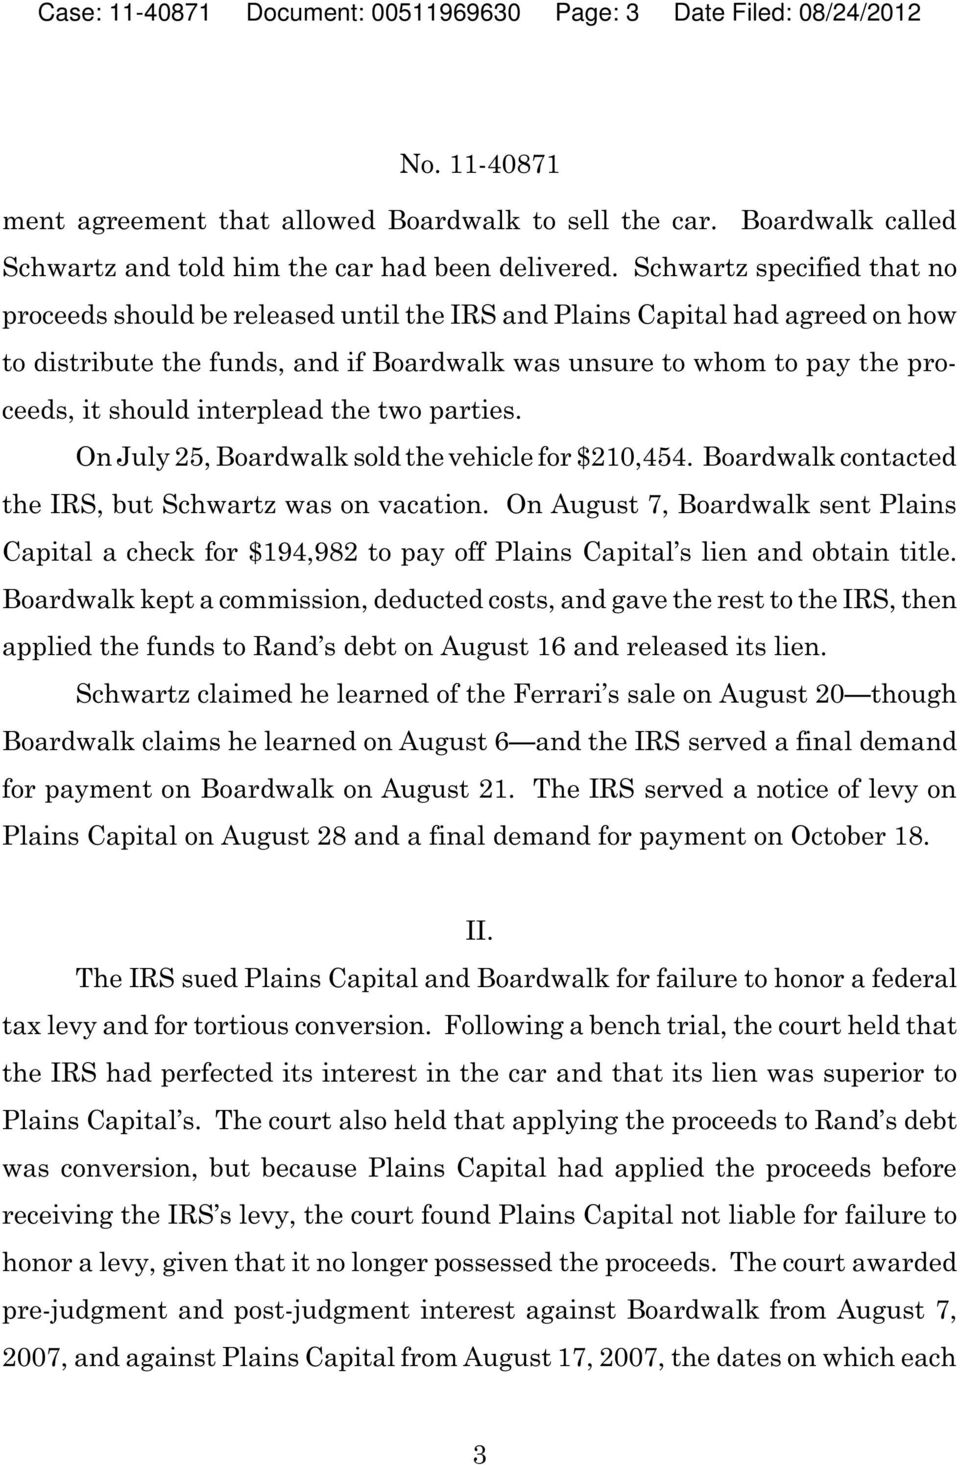 interplead the two parties. On July 25, Boardwalk sold the vehicle for $210,454. Boardwalk contacted the IRS, but Schwartz was on vacation.